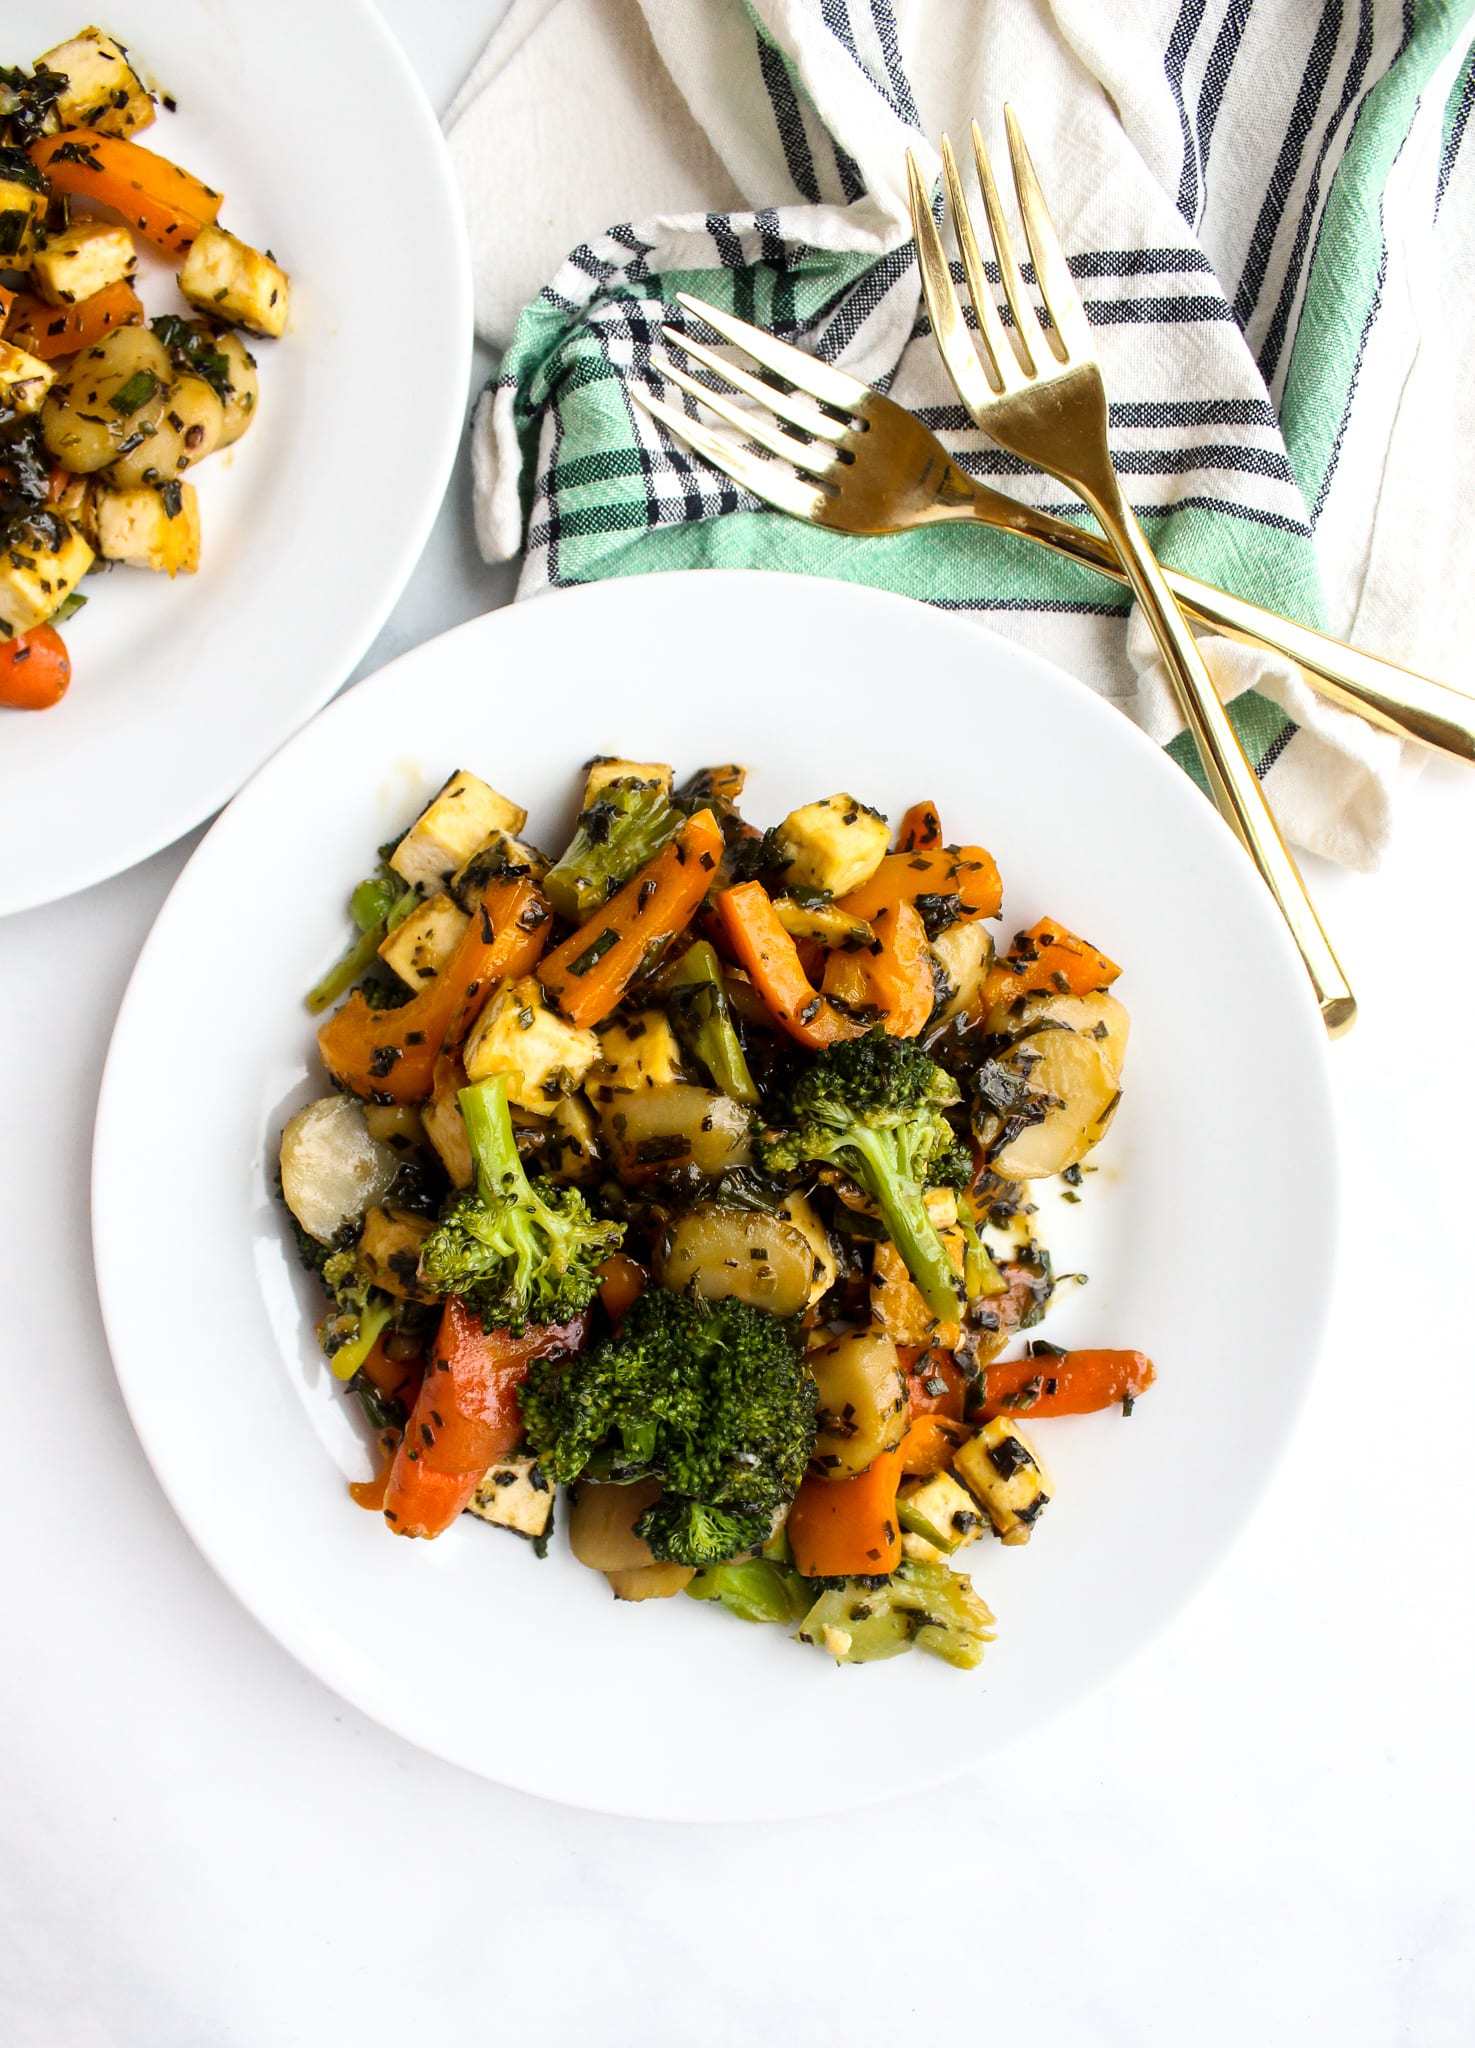 Pictured: Broccoli Stir Fry by Tara Rochford Nutrition (48 Quick and Easy Meatless Meals for Busy People)